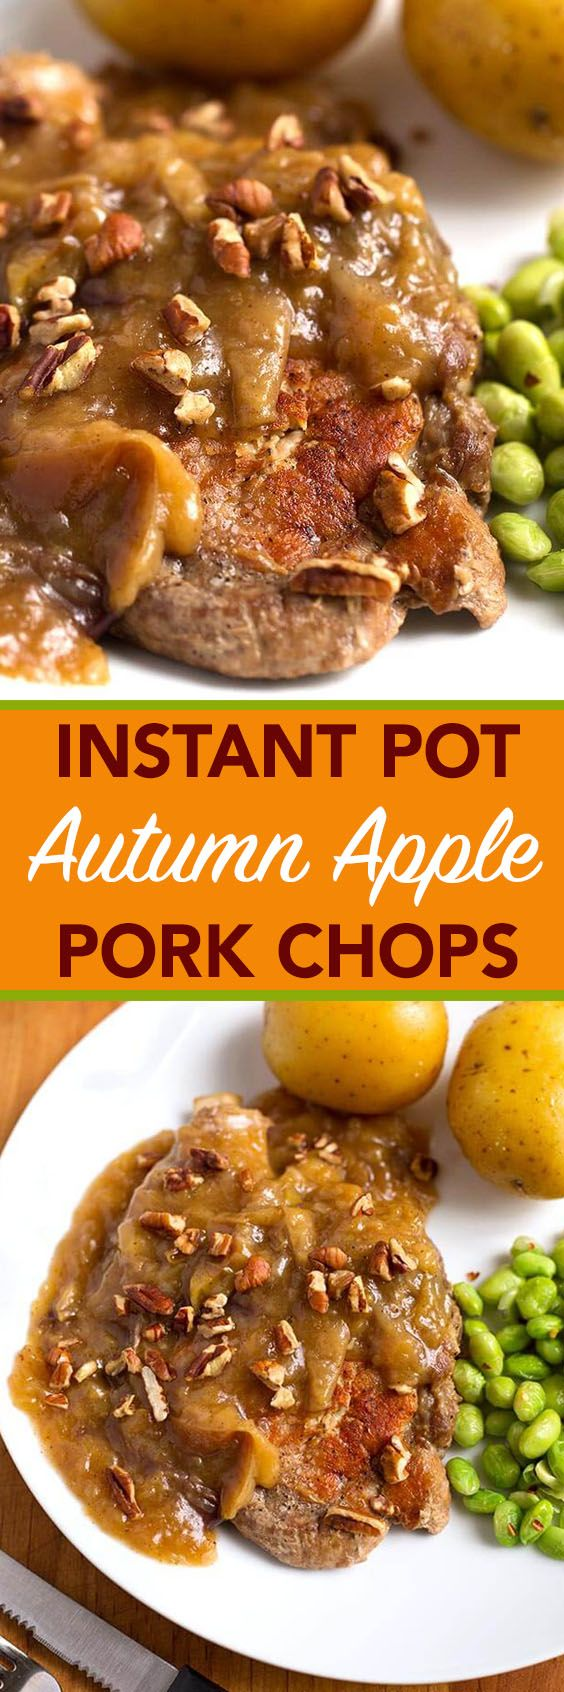 Instant Pot Autumn Apple Pork Chops are rich and warm tasting with just a hint of cinnamon and nutmeg. My family's absolute favorite pork chop recipe! simplyhappyfoodie.com #instantpotrecipes #instantpotporkchops #instapotporkchops #instapotrecipes